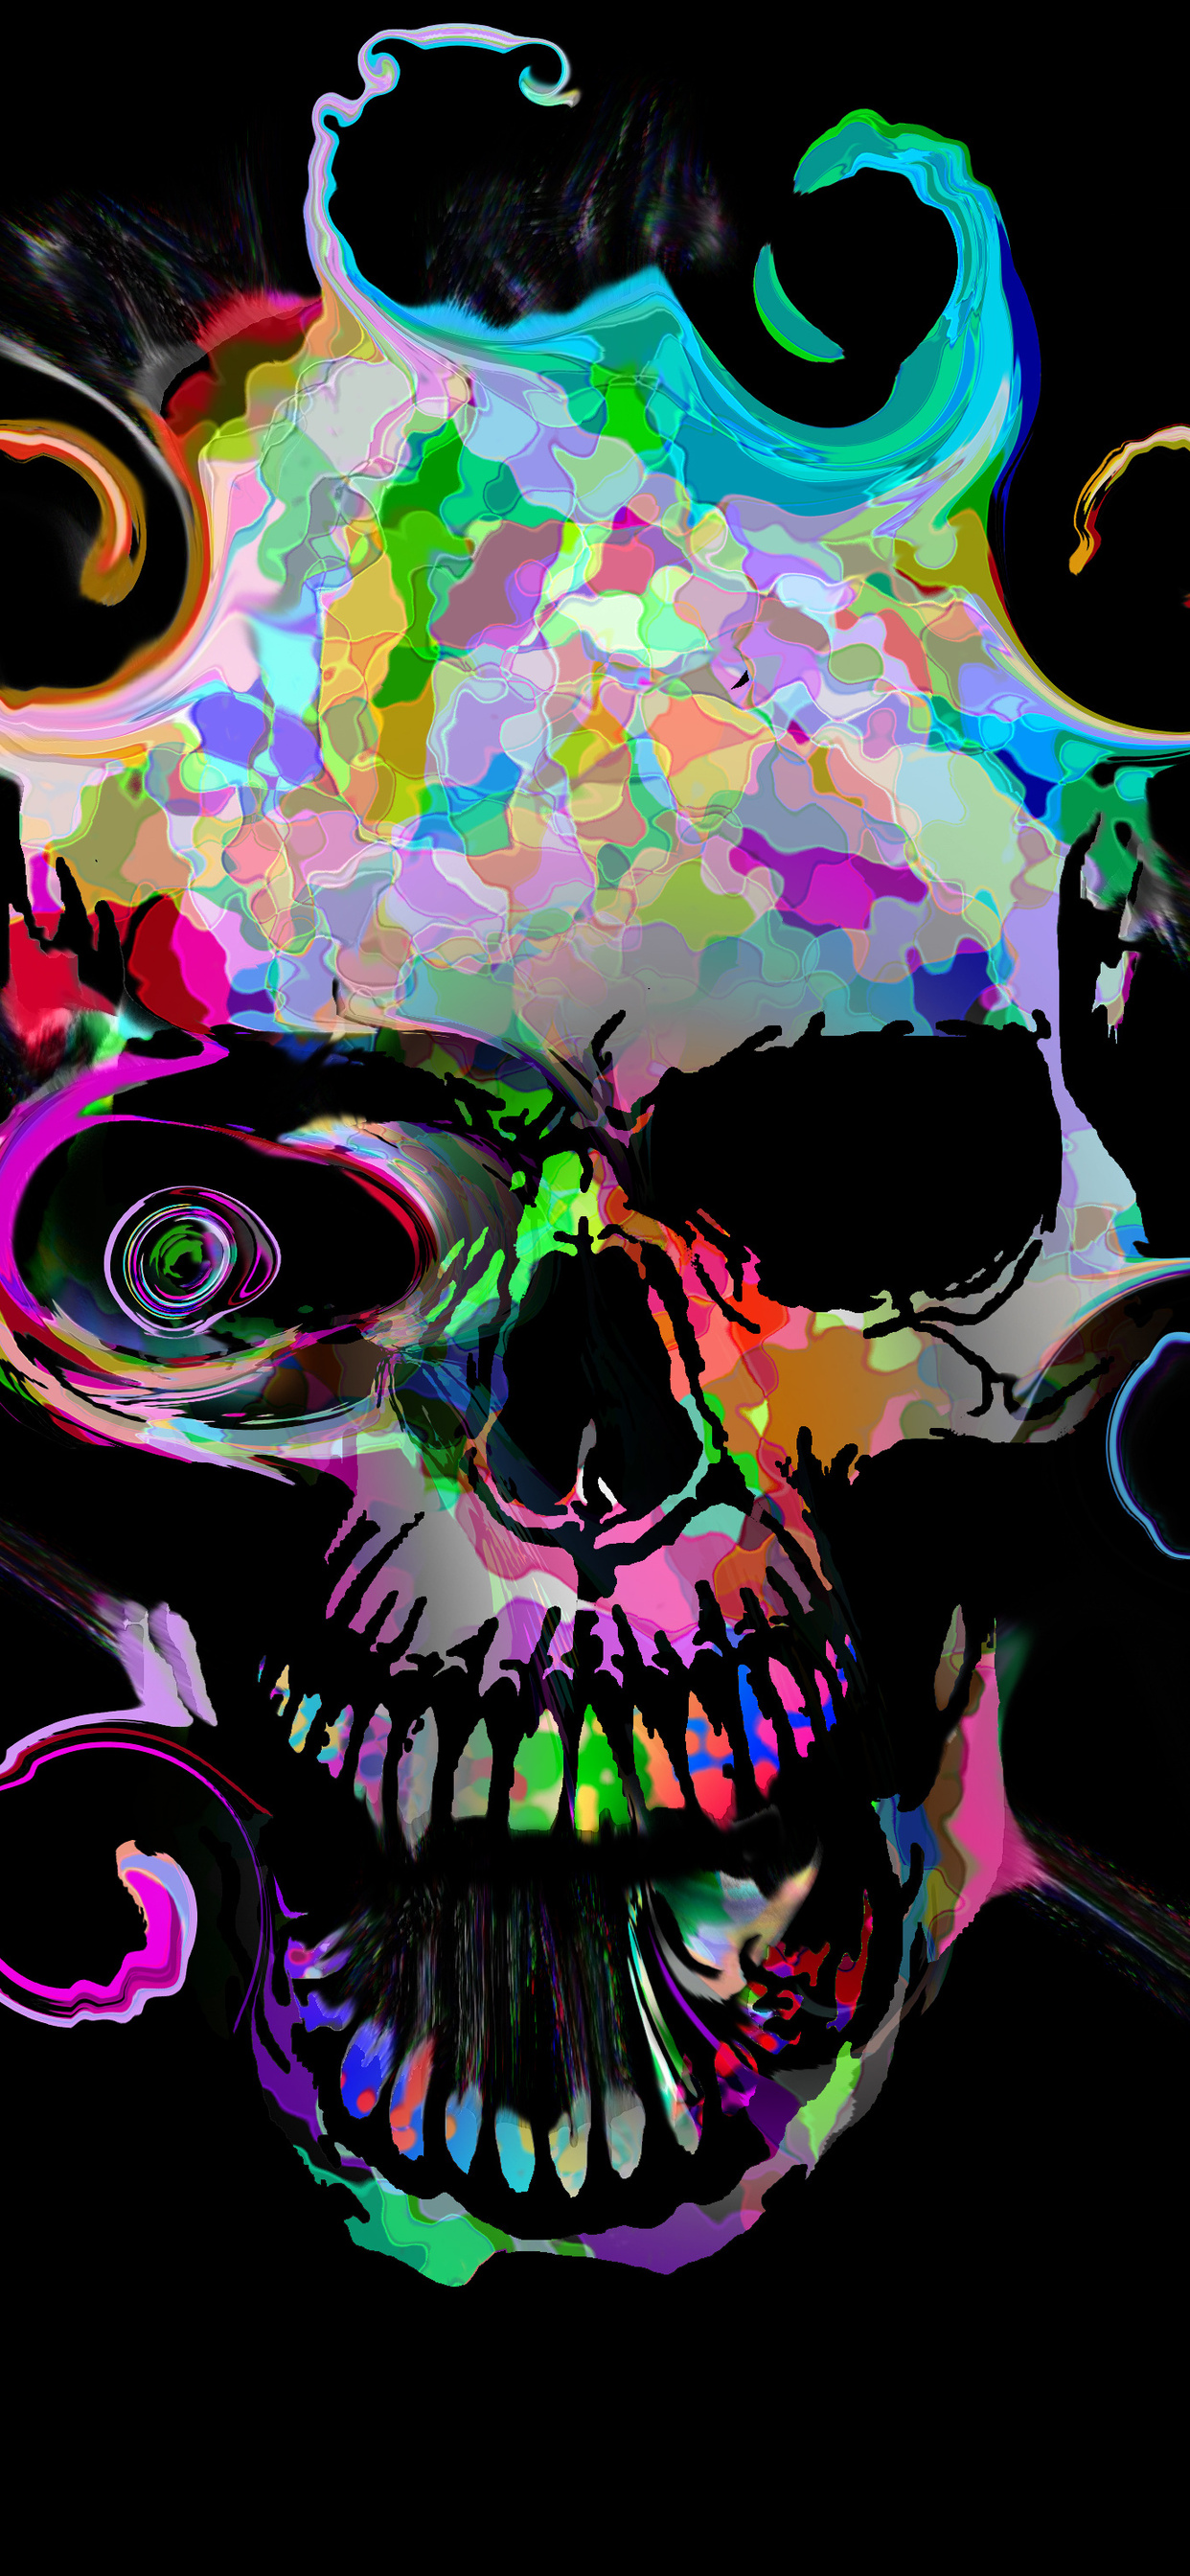 artistic-colorful-skull-78.jpg